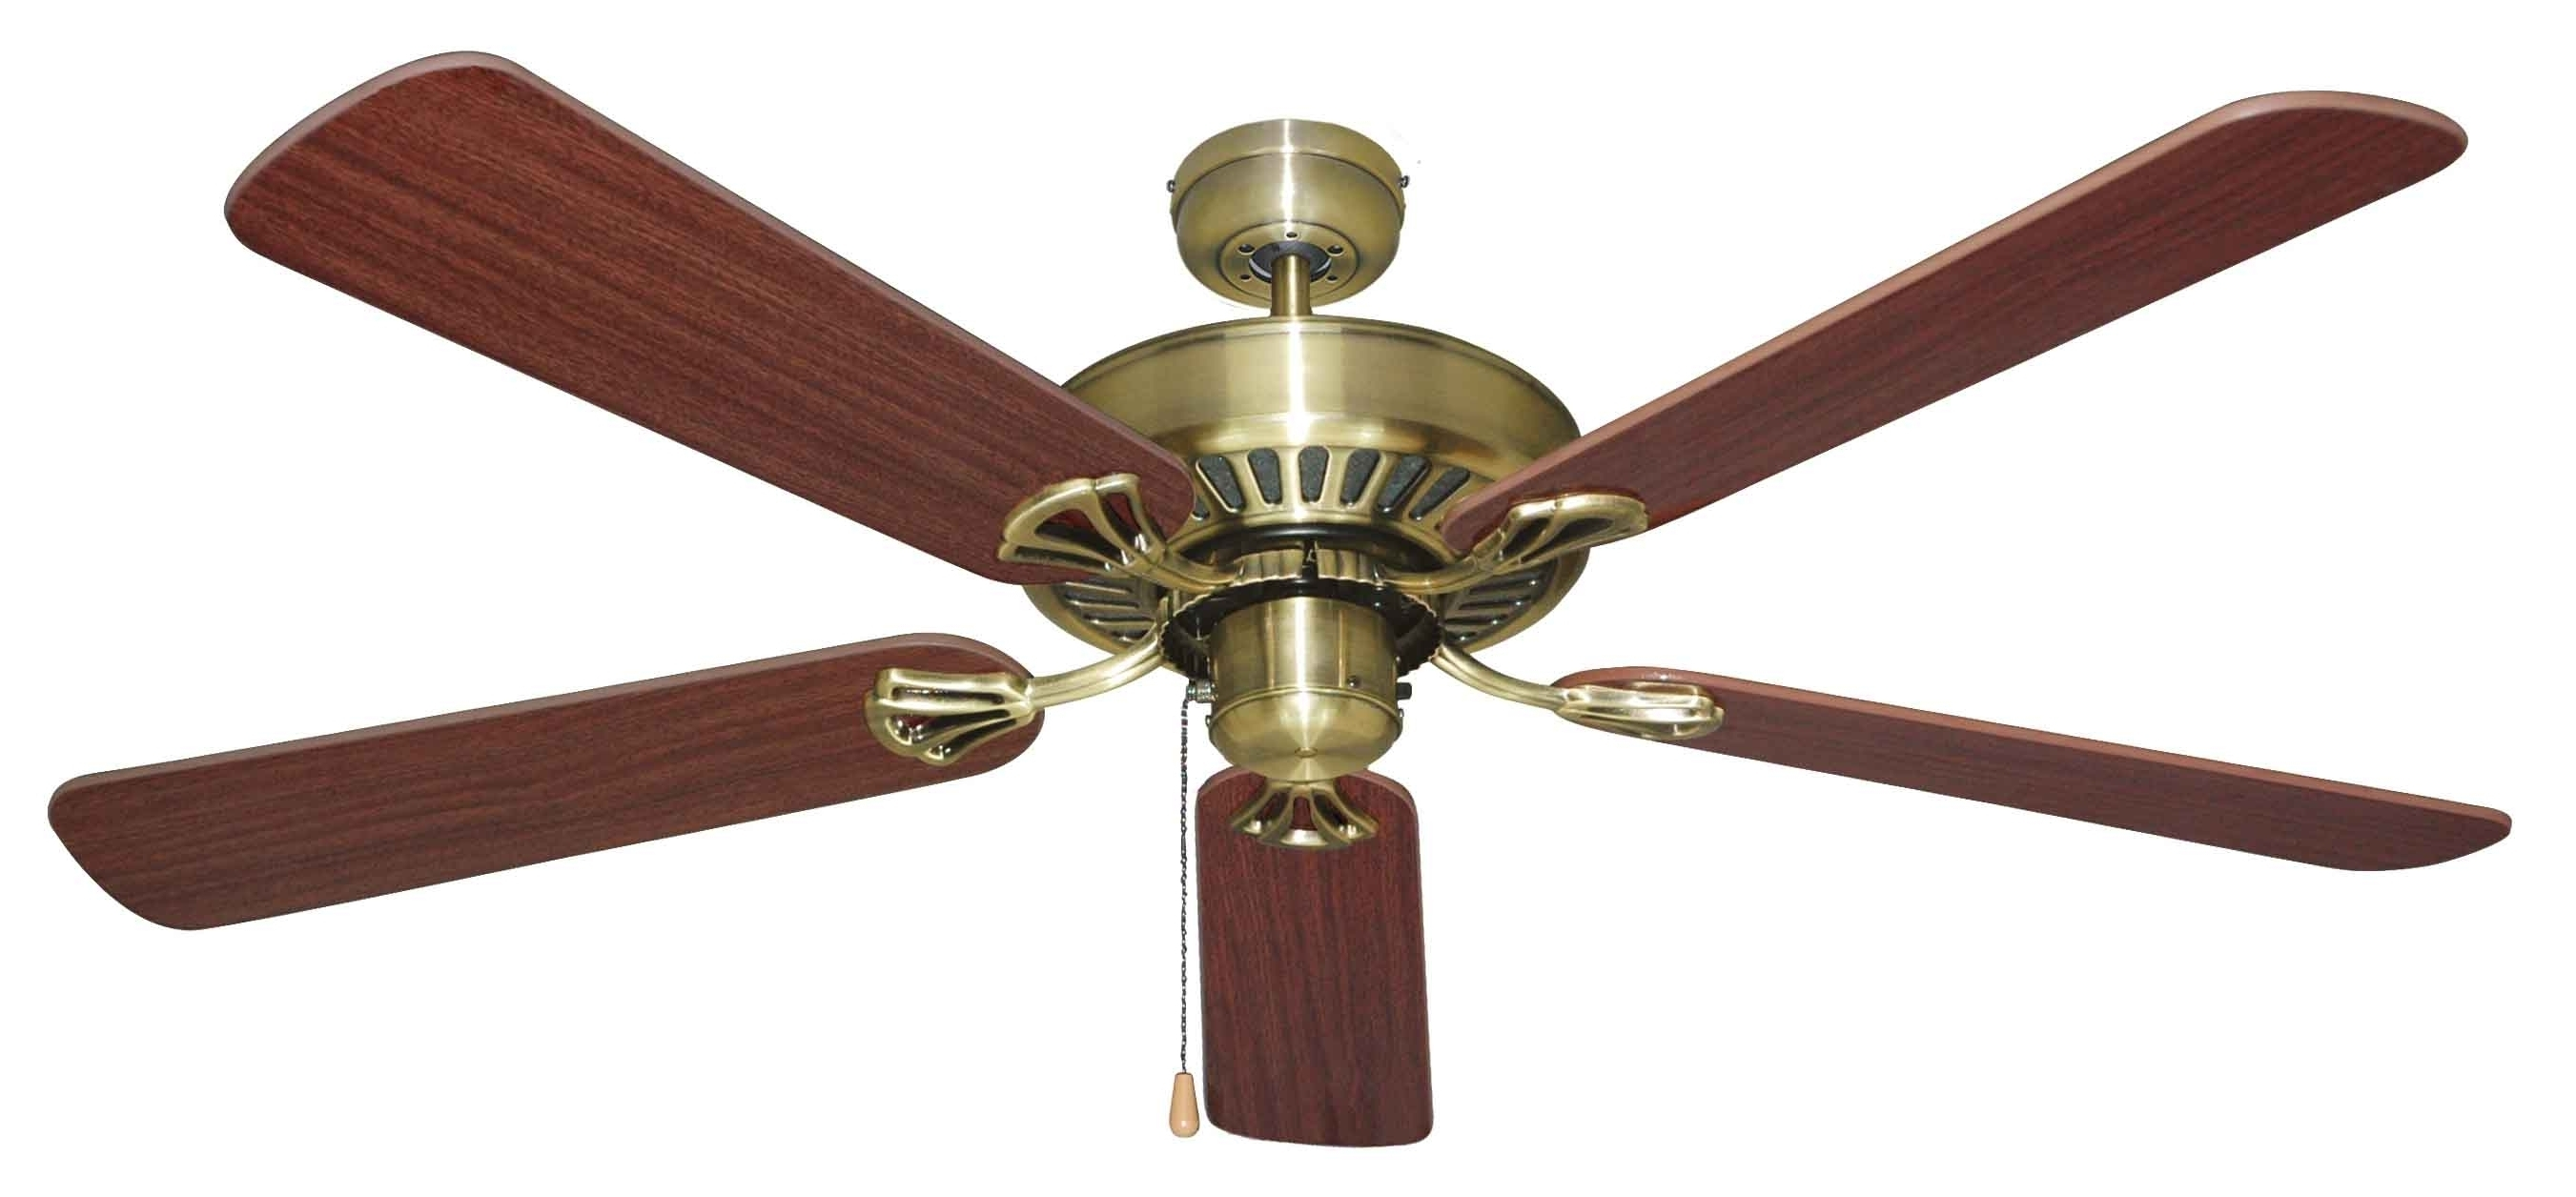 Outdoor Ceiling Fans At Bunnings Regarding Most Recent Mercator Ceiling Fans Bunnings • Ceiling Fans Ideas (View 15 of 20)